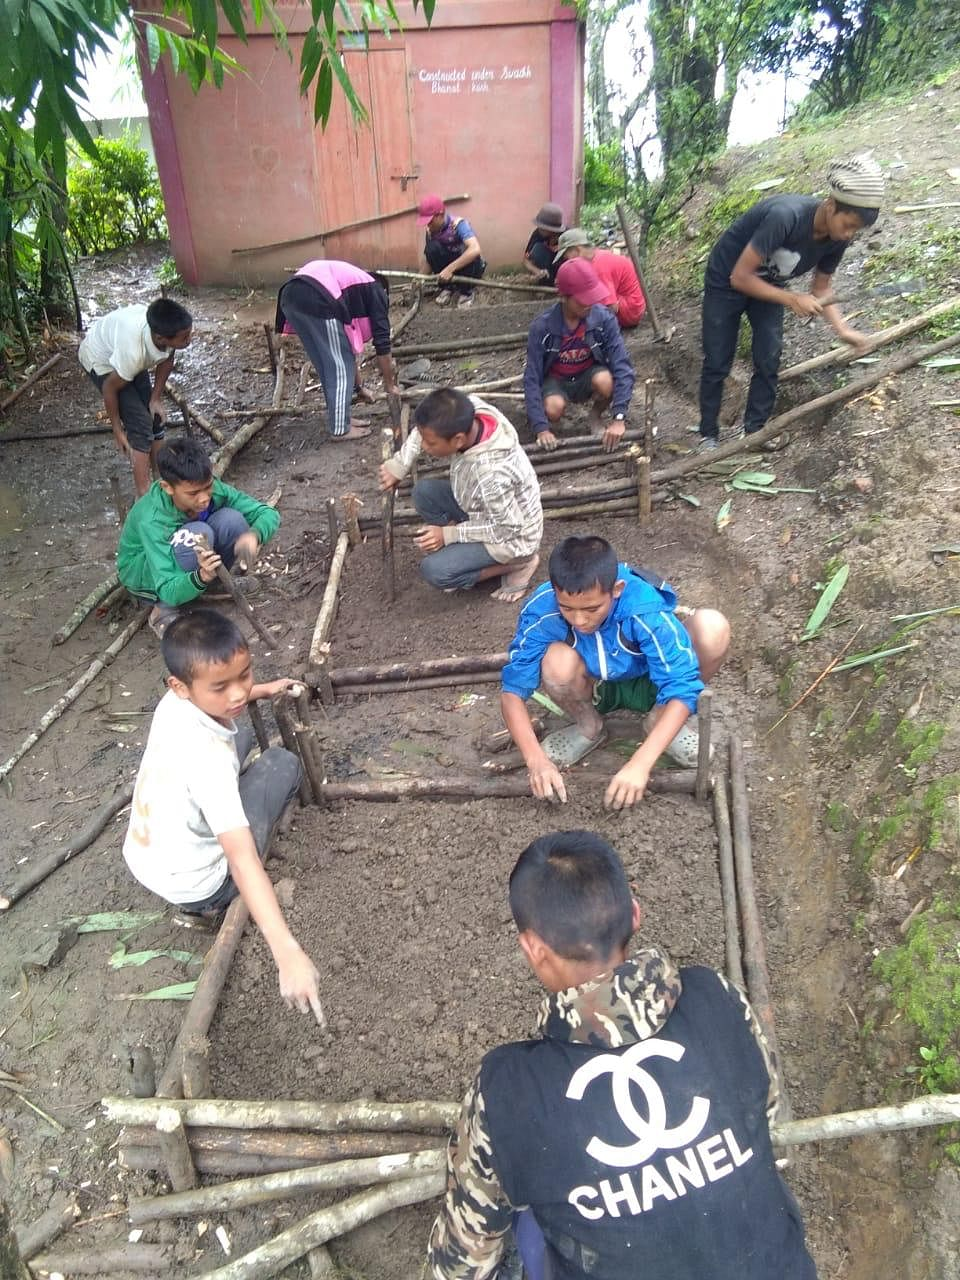 Children preparing a portion of land near their school for growing fruits and vegetables in Mizoram's Lawngtlai district